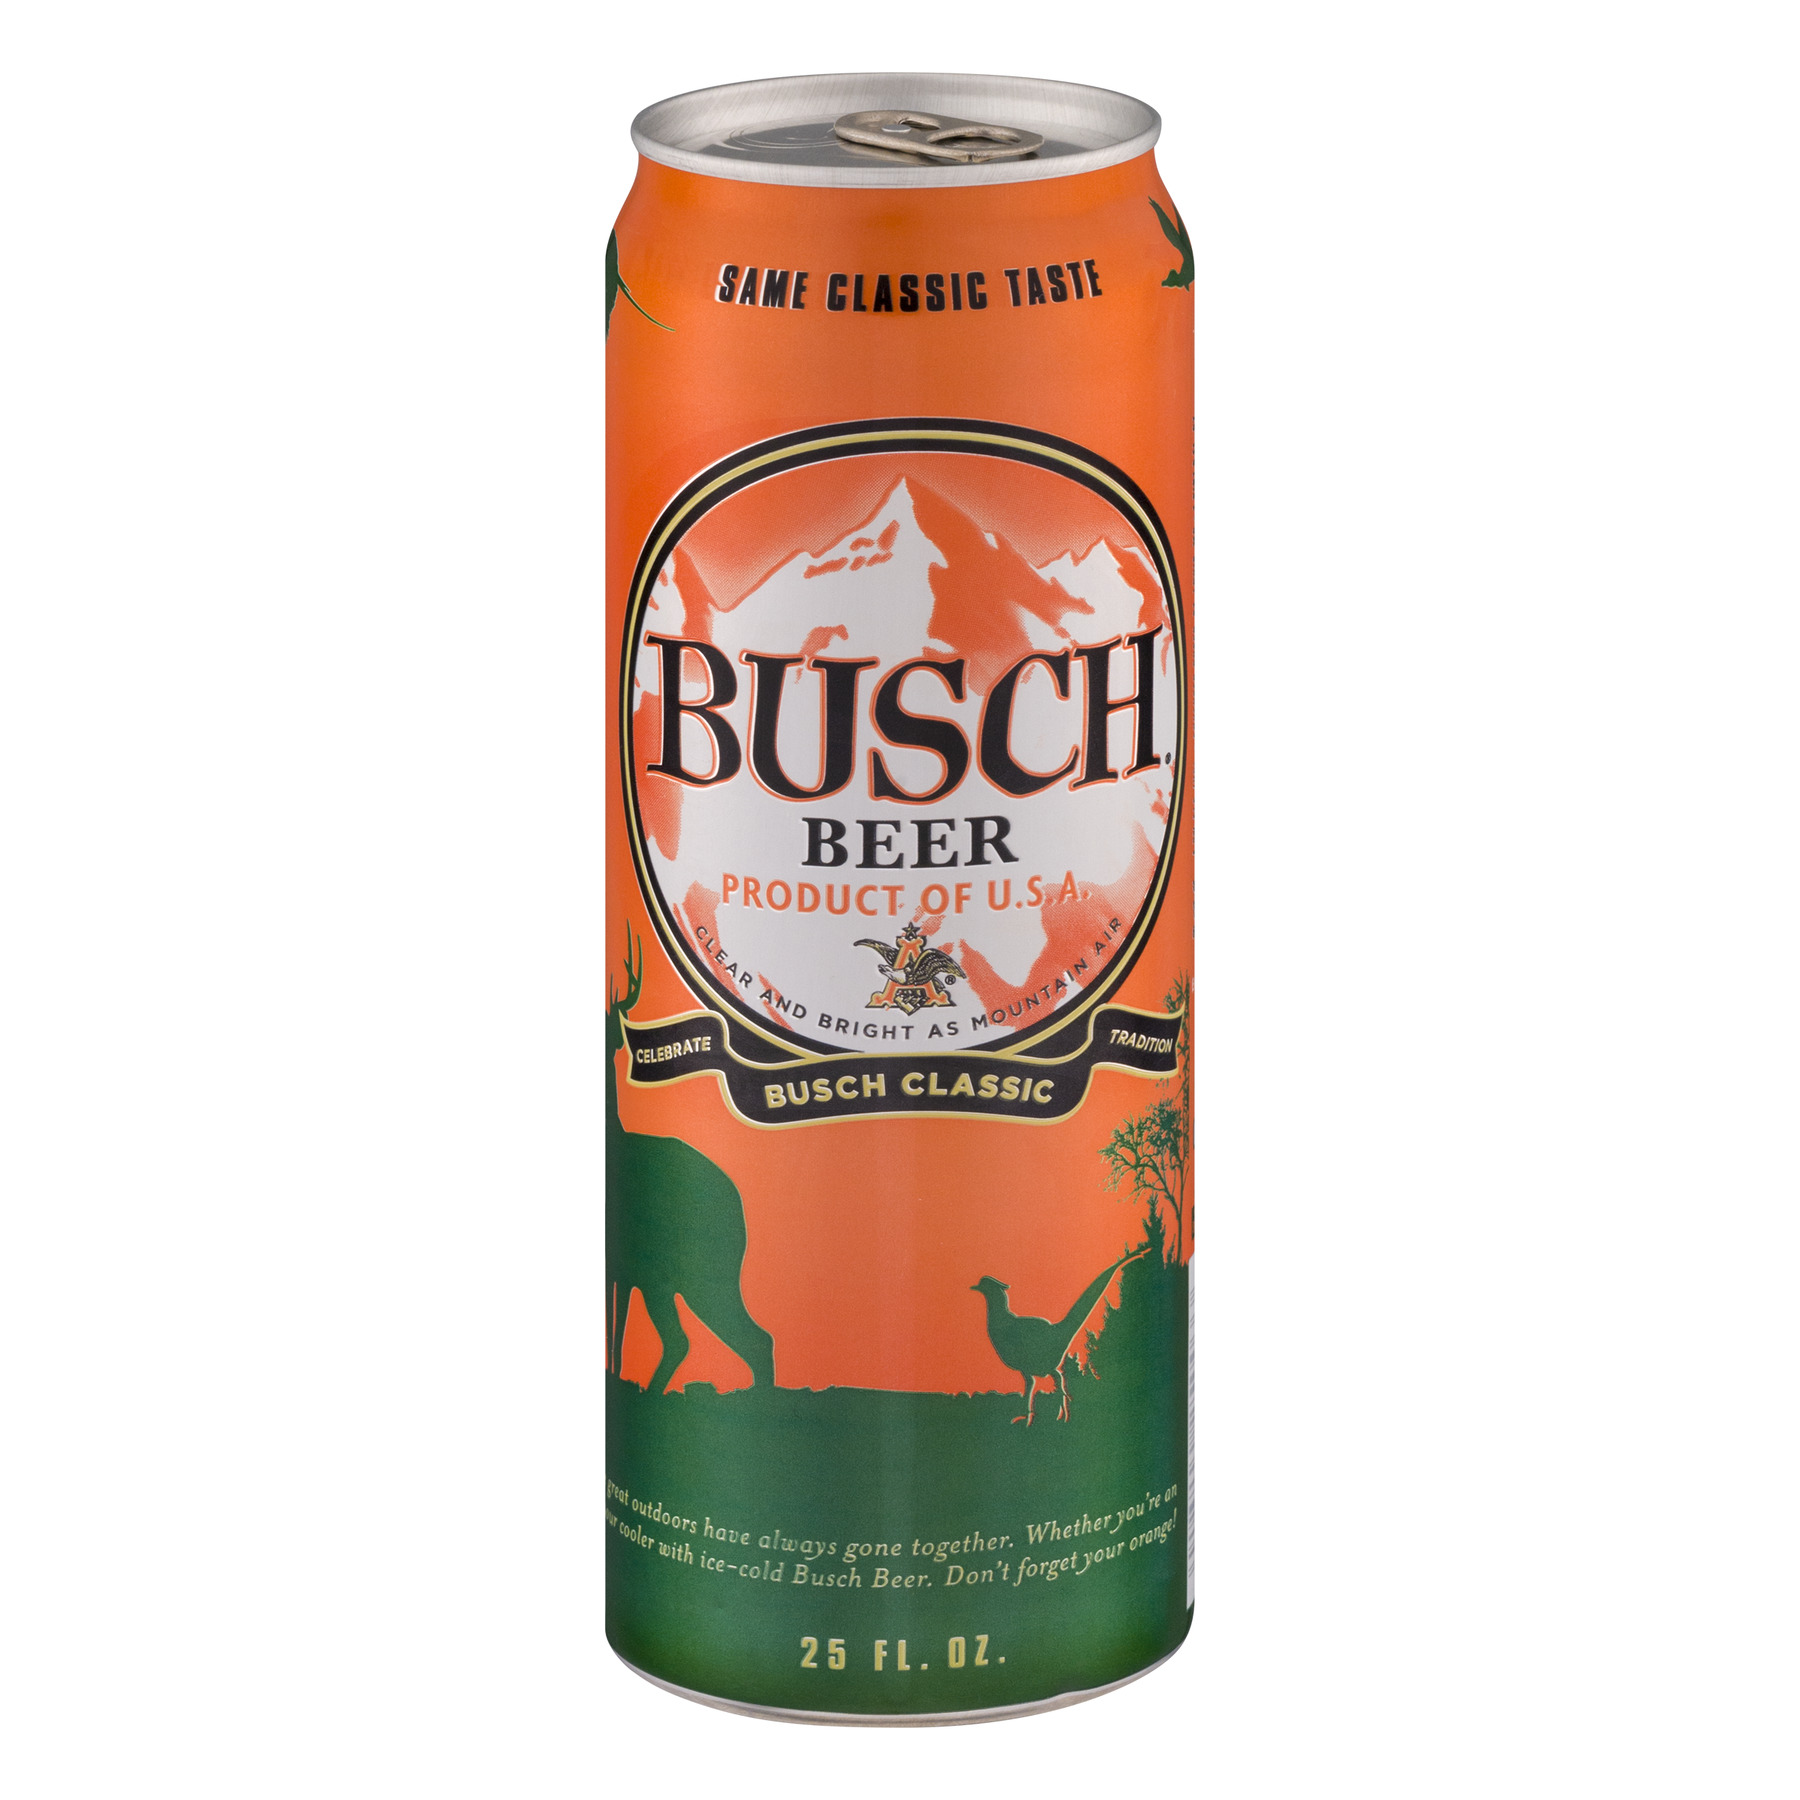 Busch Beer Classic Limited Edition, 25.0 FL OZ